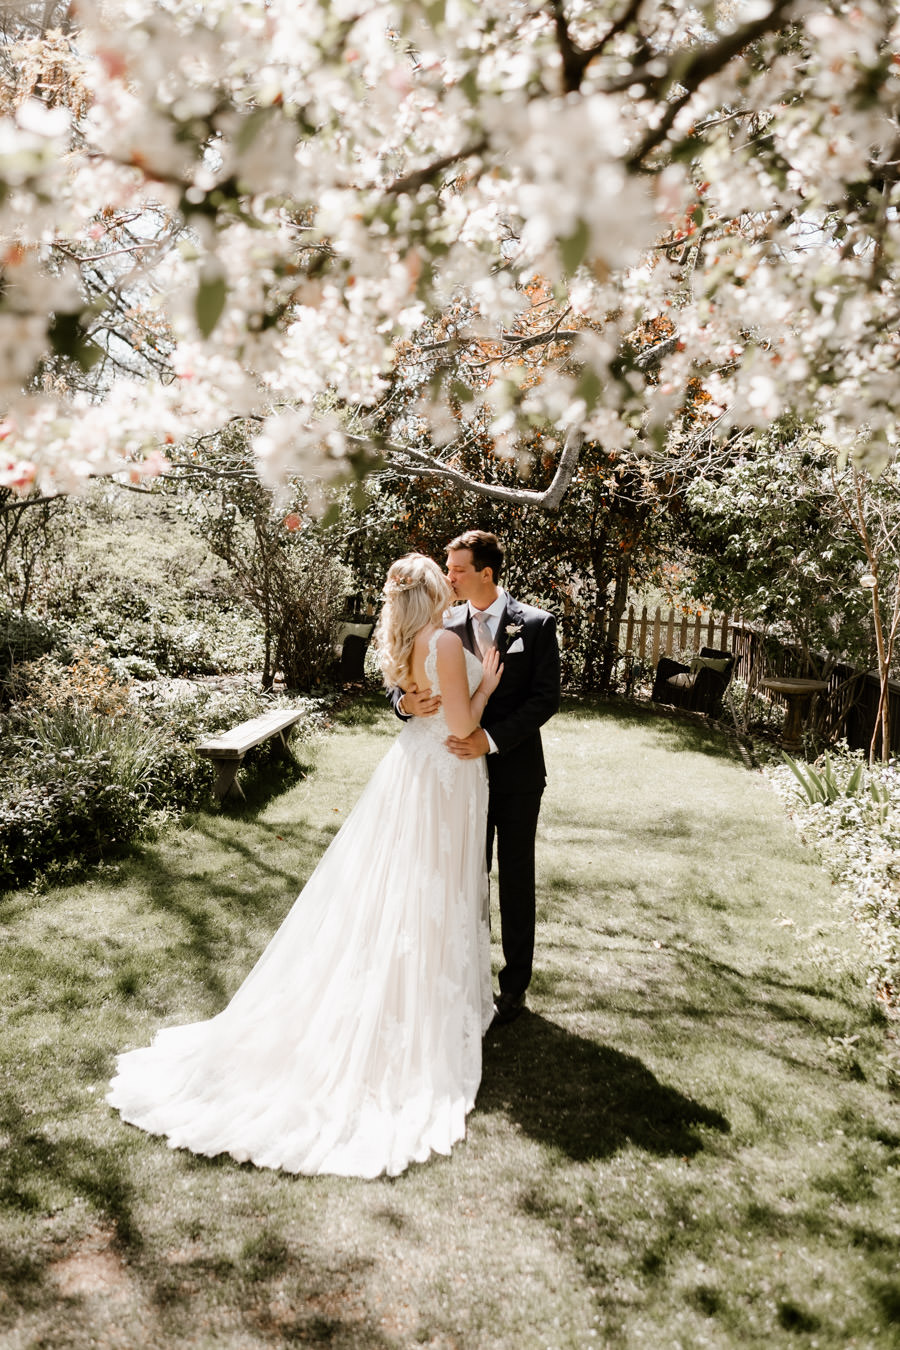 sacred mountain julian wedding first look and kiss under the cherry blossom